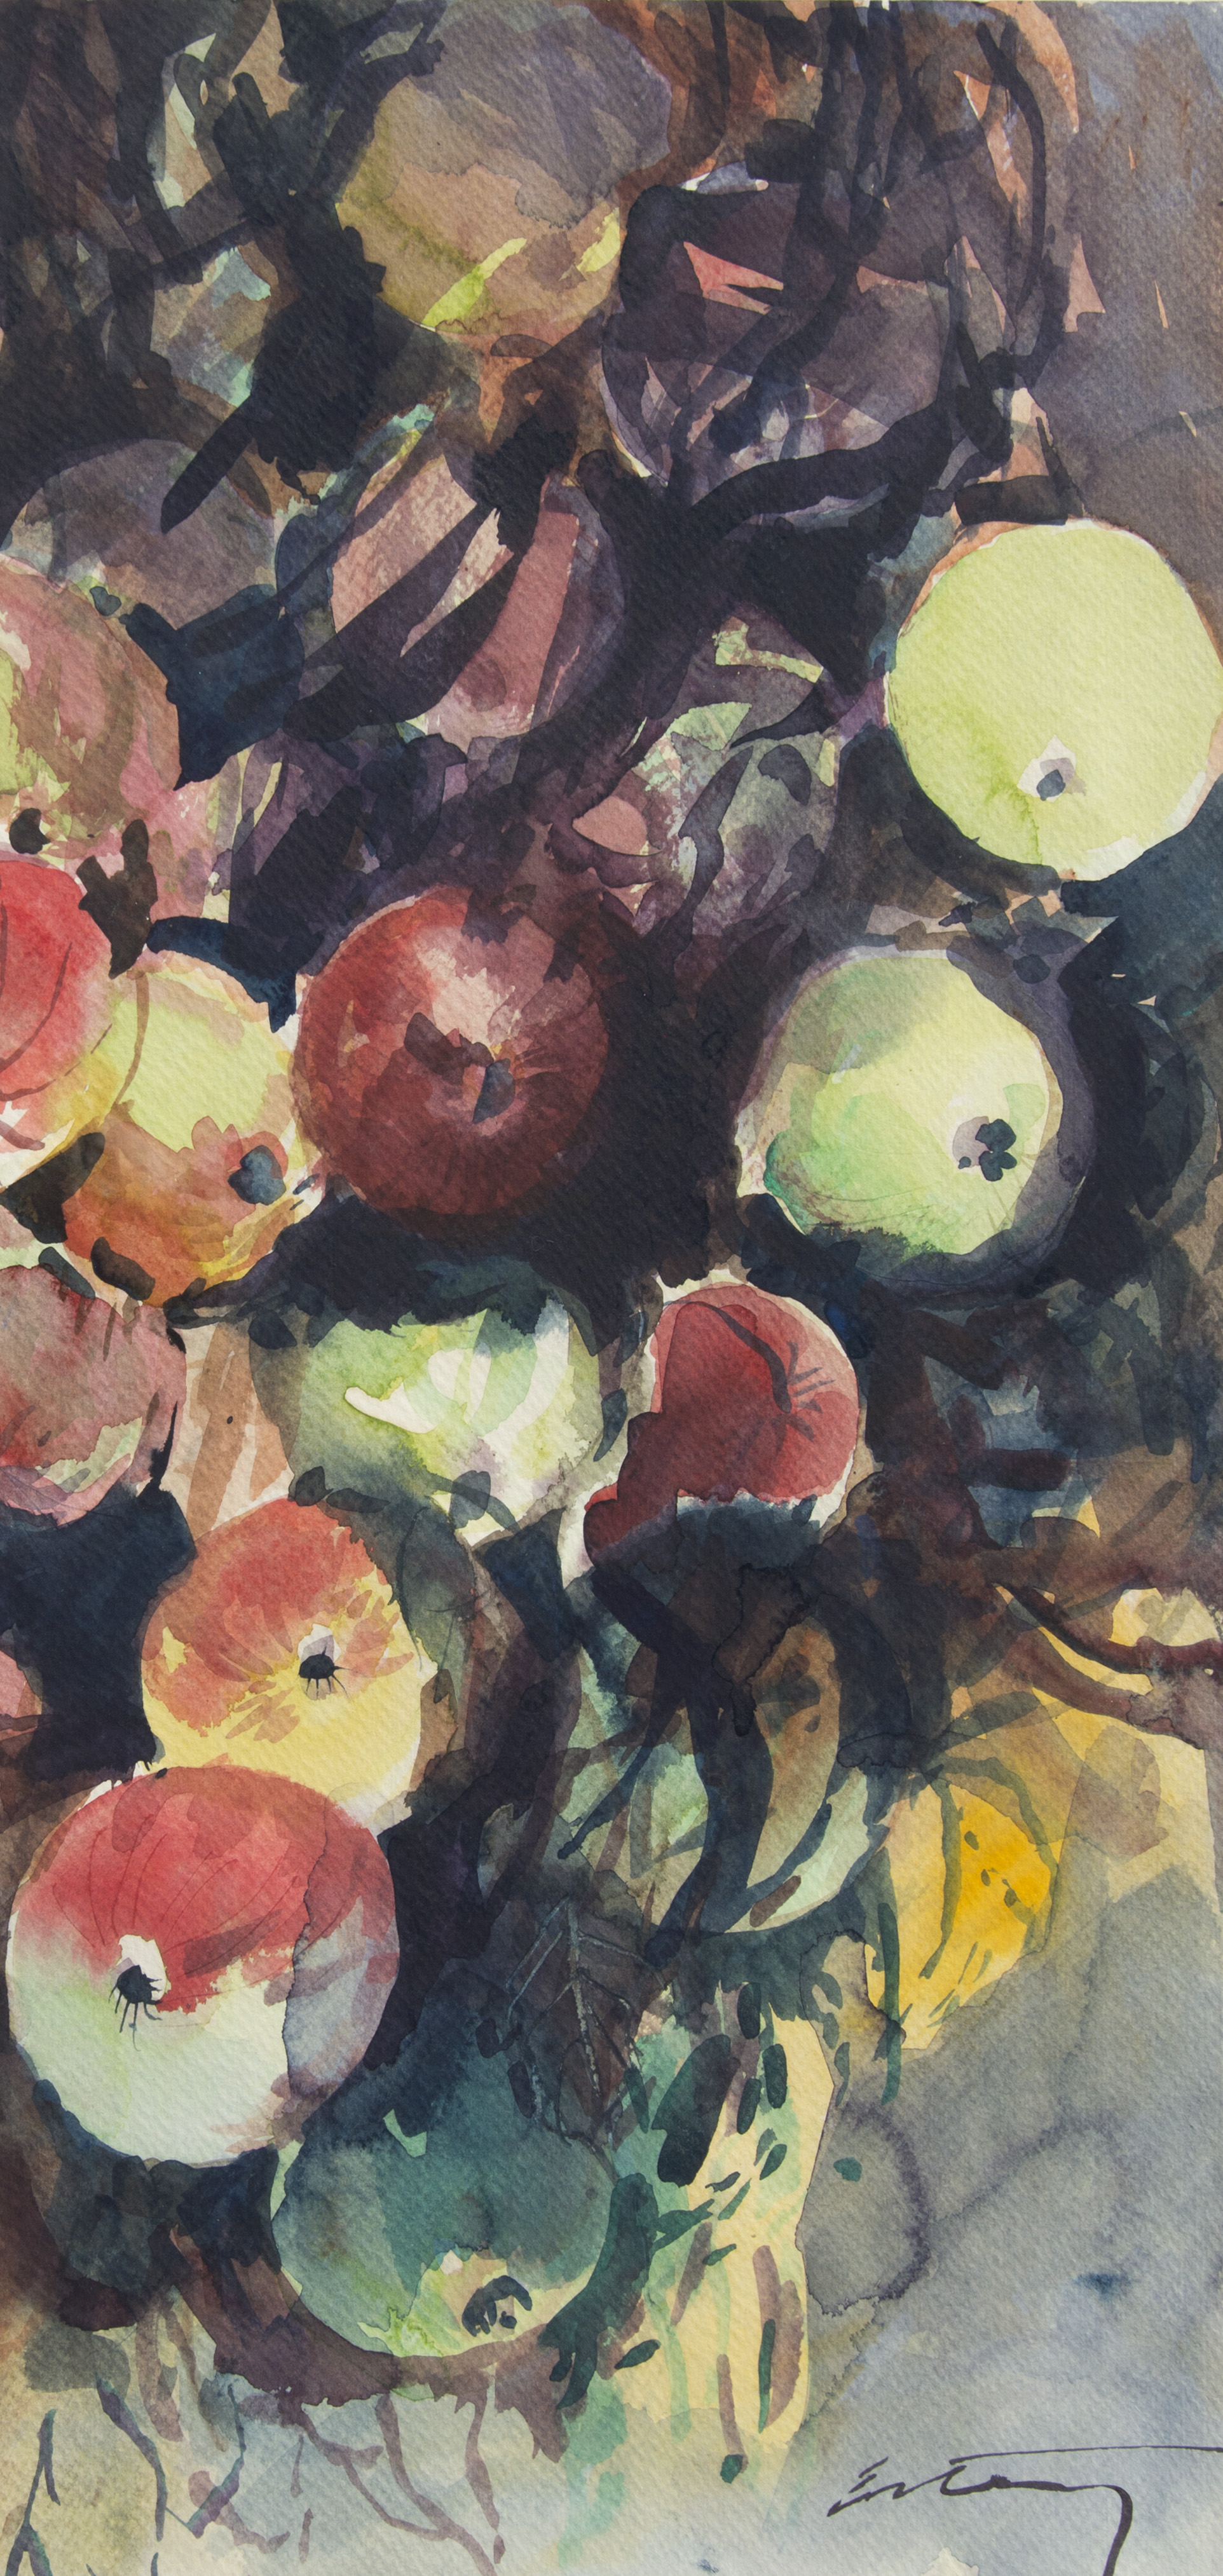 James Estey, French Apples, 1983